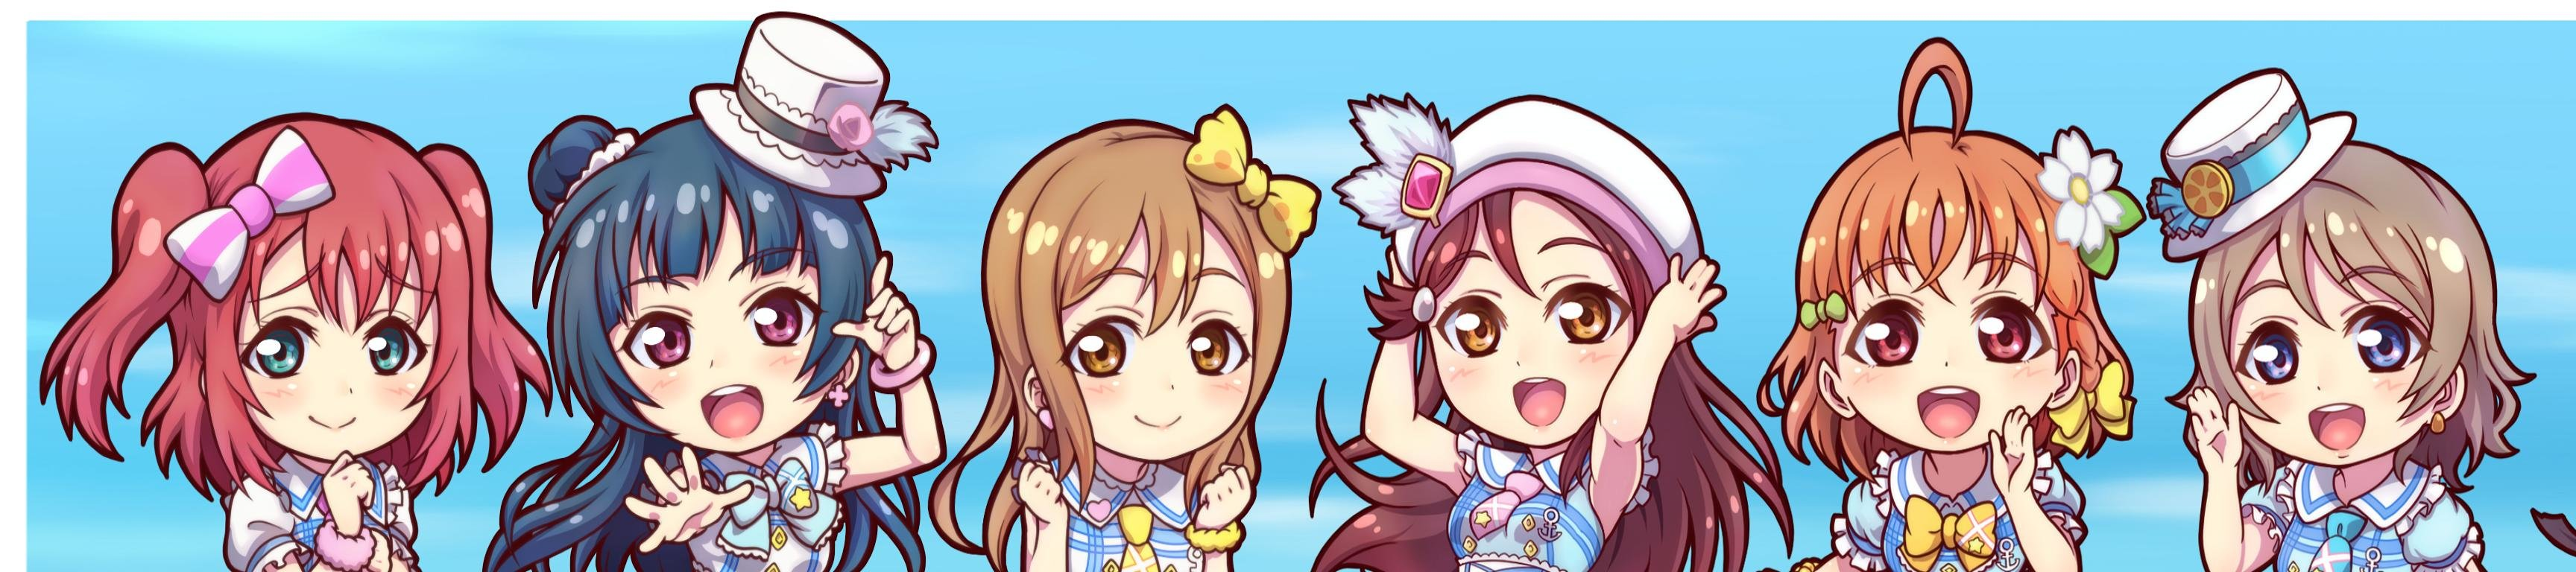 High resolution Love Live! triple screen 3456x768 wallpaper ID:152424 for computer